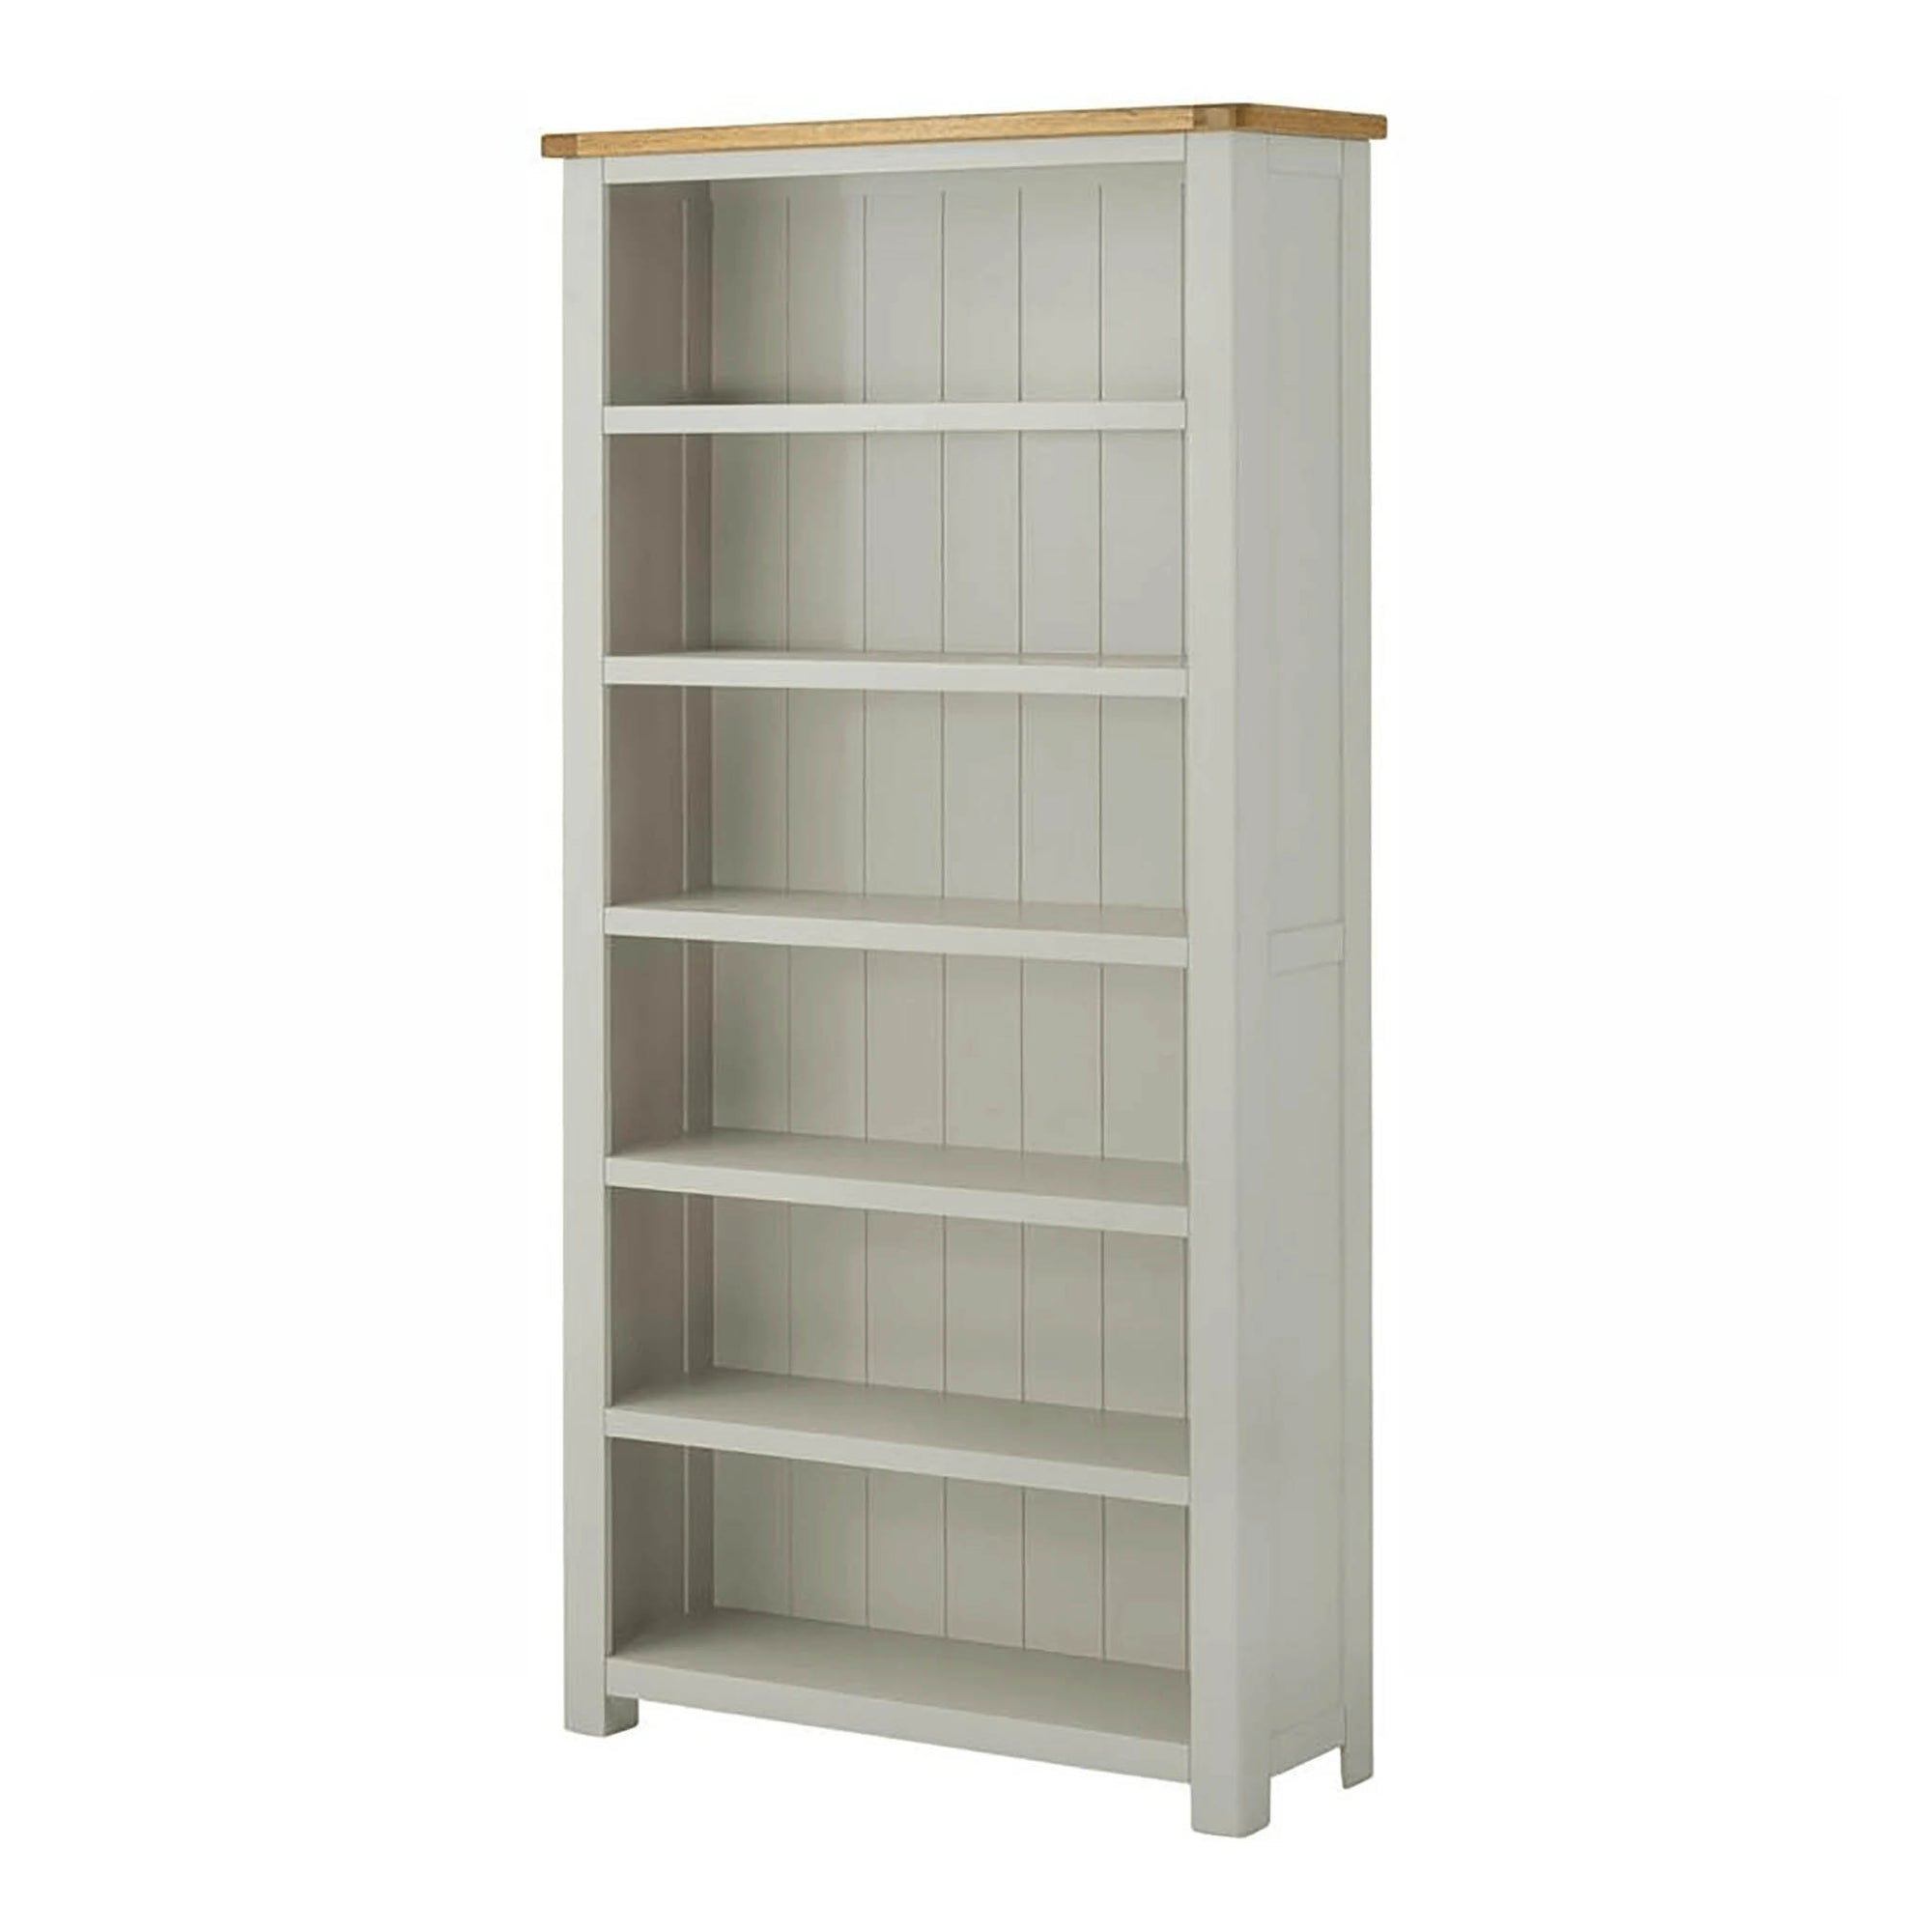 The Padstow Grey Large Wooden Bookcase from Roseland Furniture